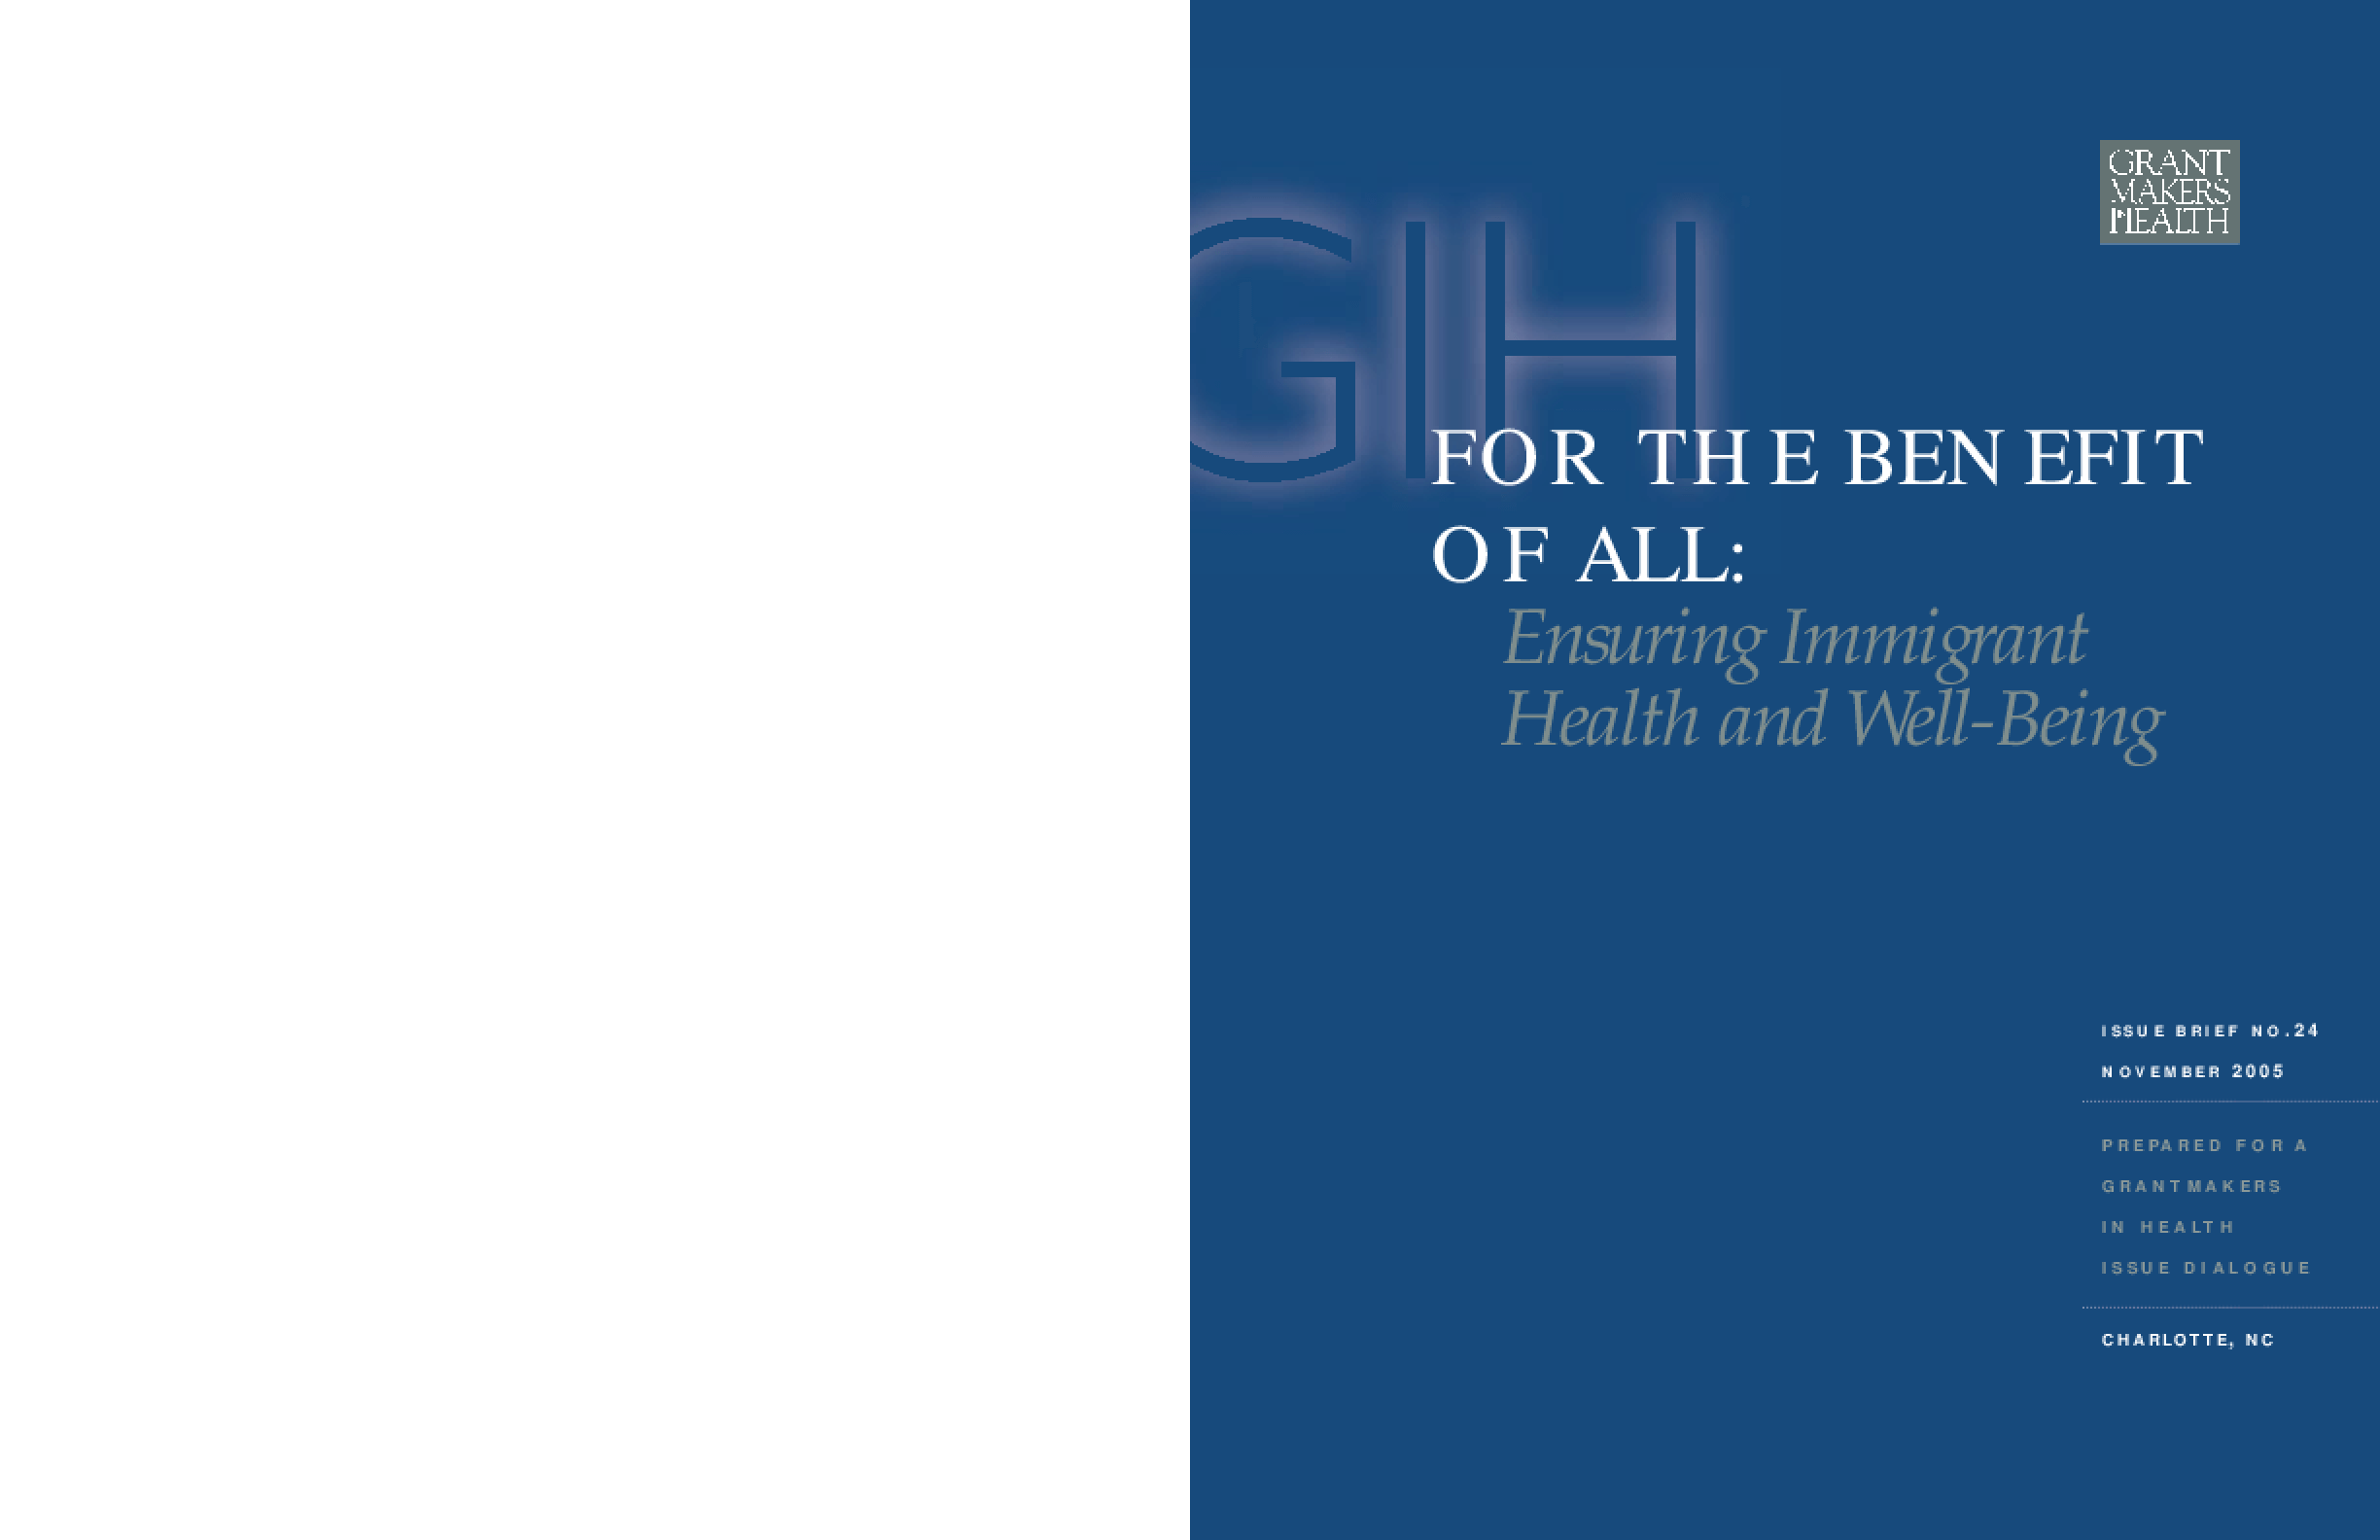 For the Benefit of All: Ensuring Immigrant Health and Well-Being